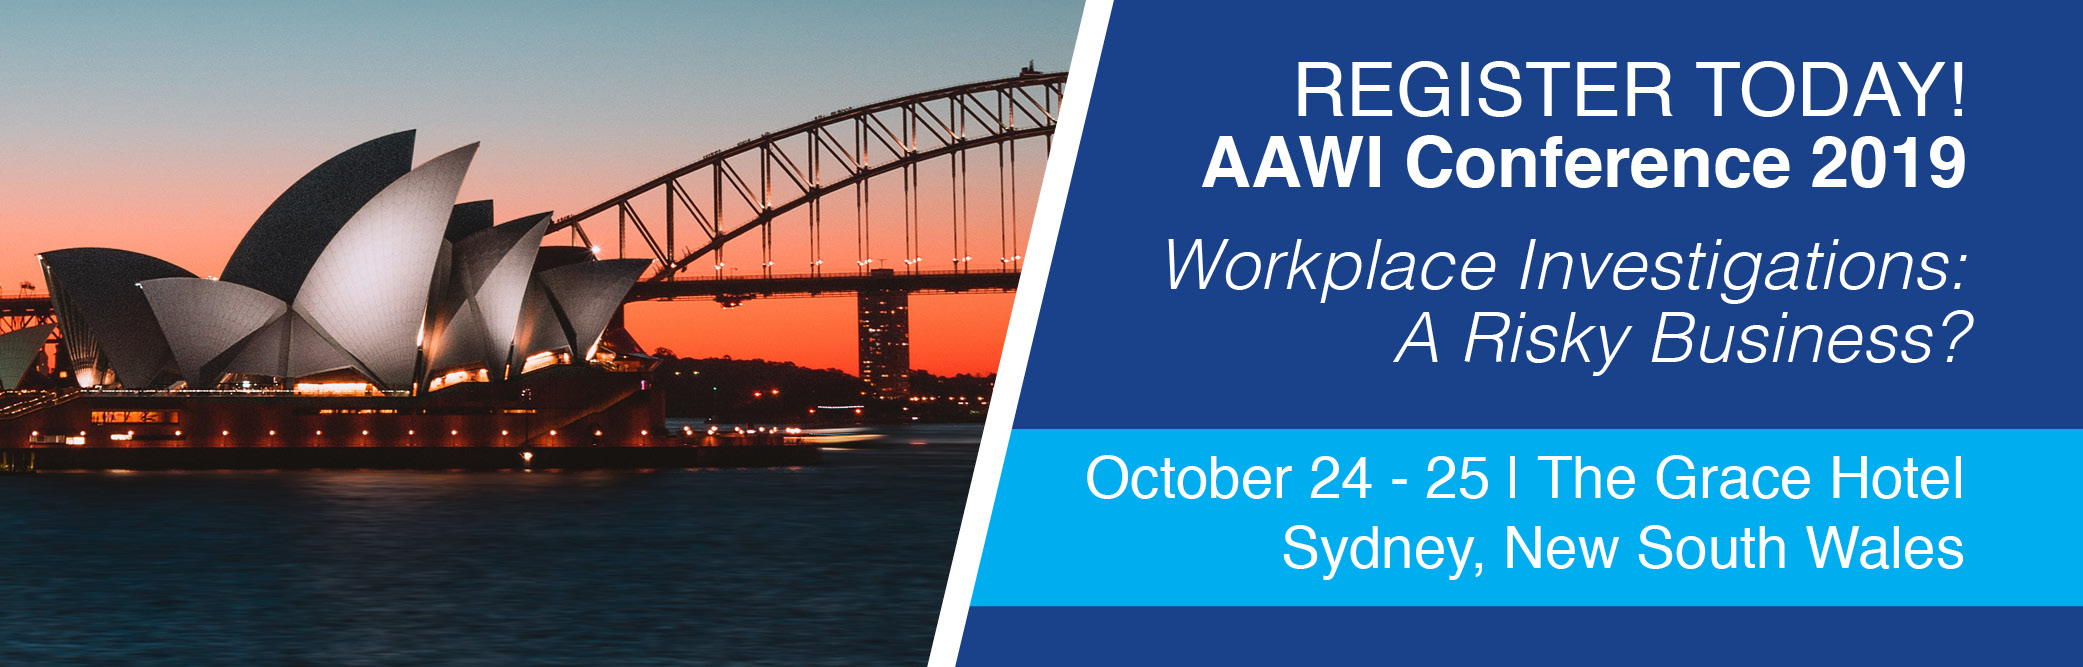 Register today for AAWI's Annual Conference